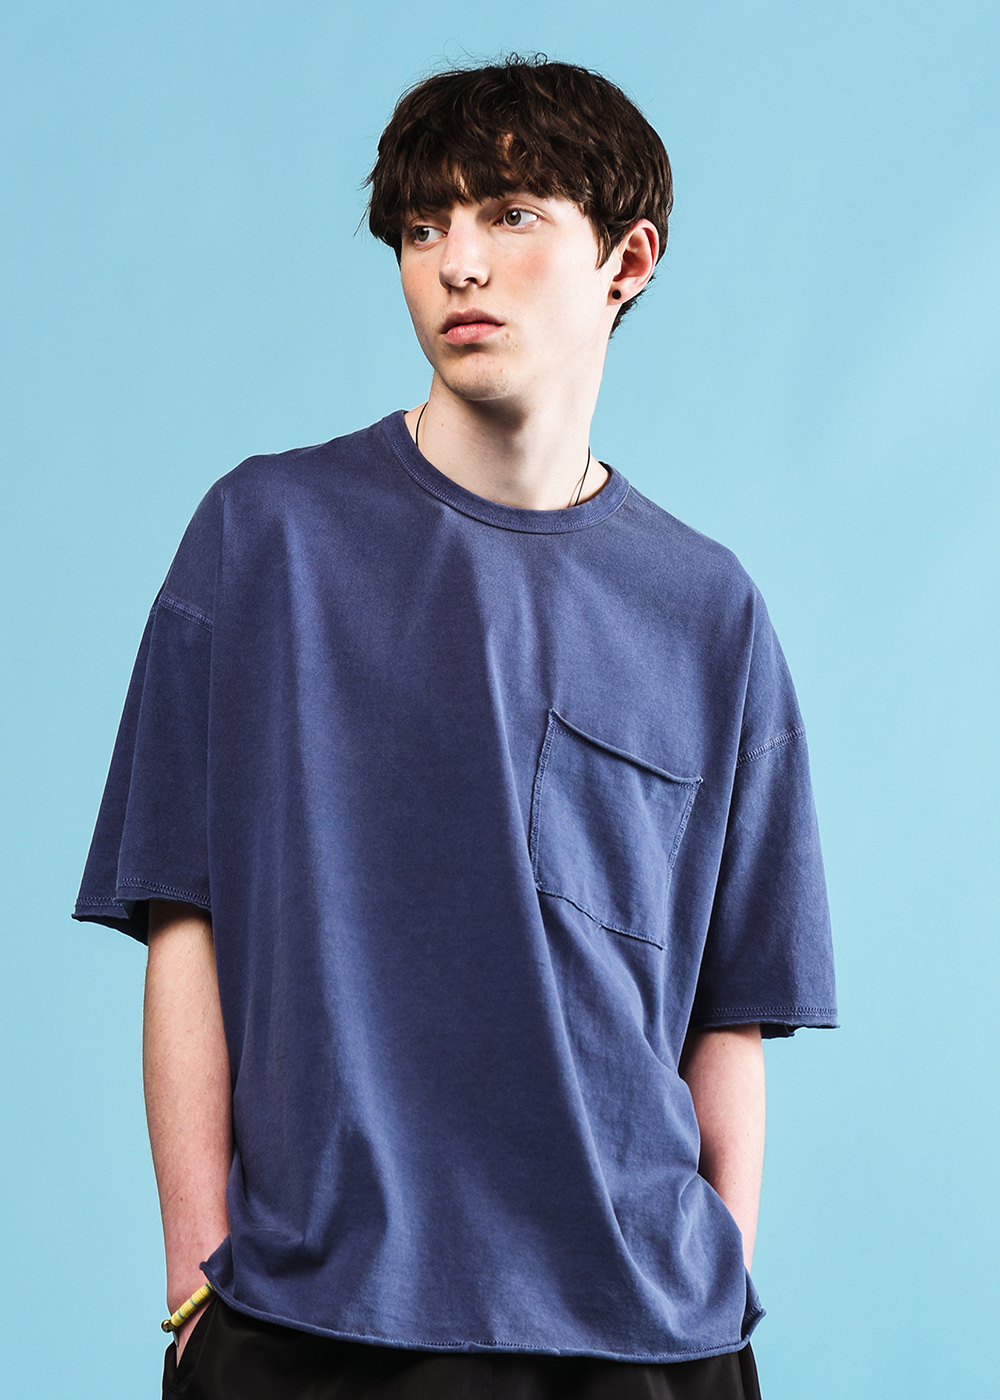 Stitches half T-shirt [navy]